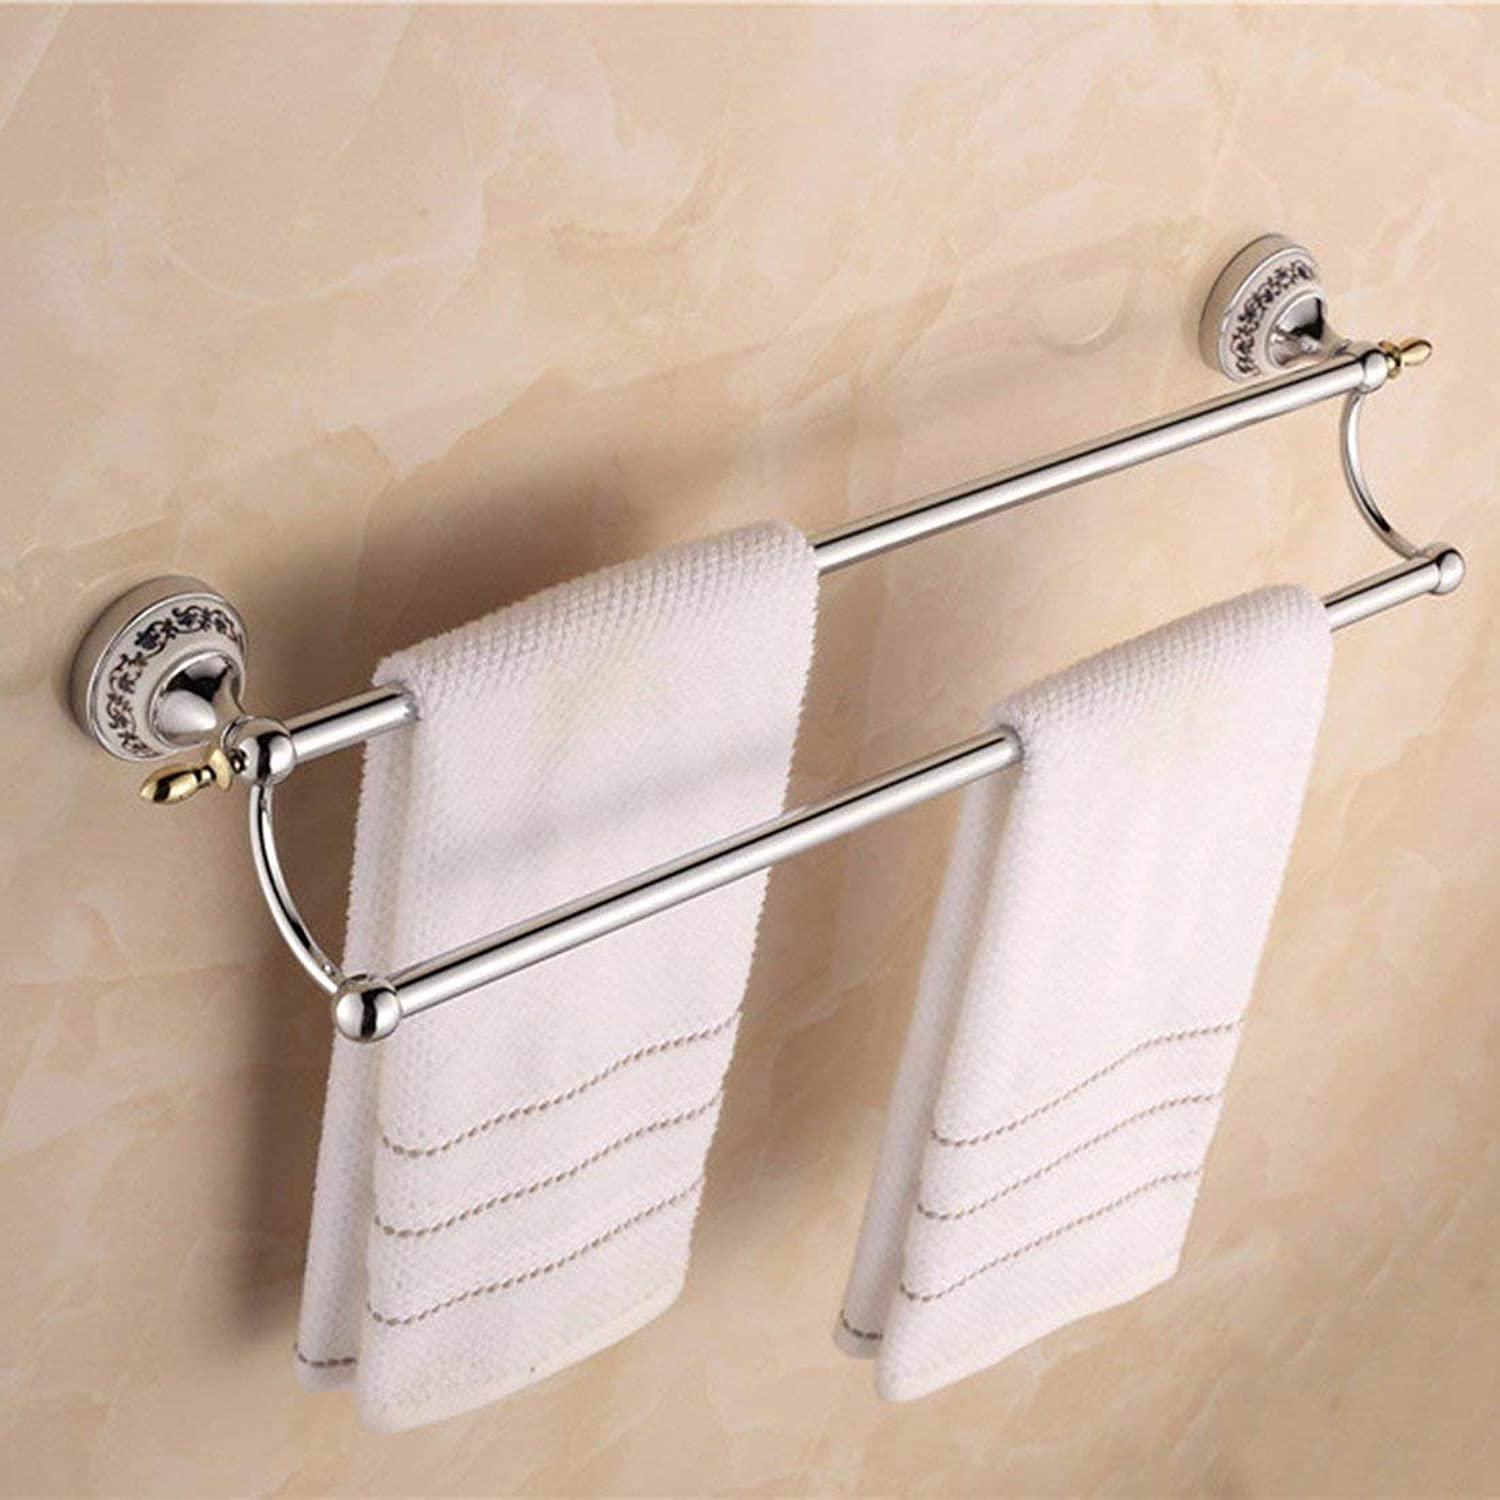 Of Contemporary European Style of Christmas bluee and White and Chrome Accessories for Bathroom in Porcelain, Simple and Double Paper Holder Bar,Double Pole